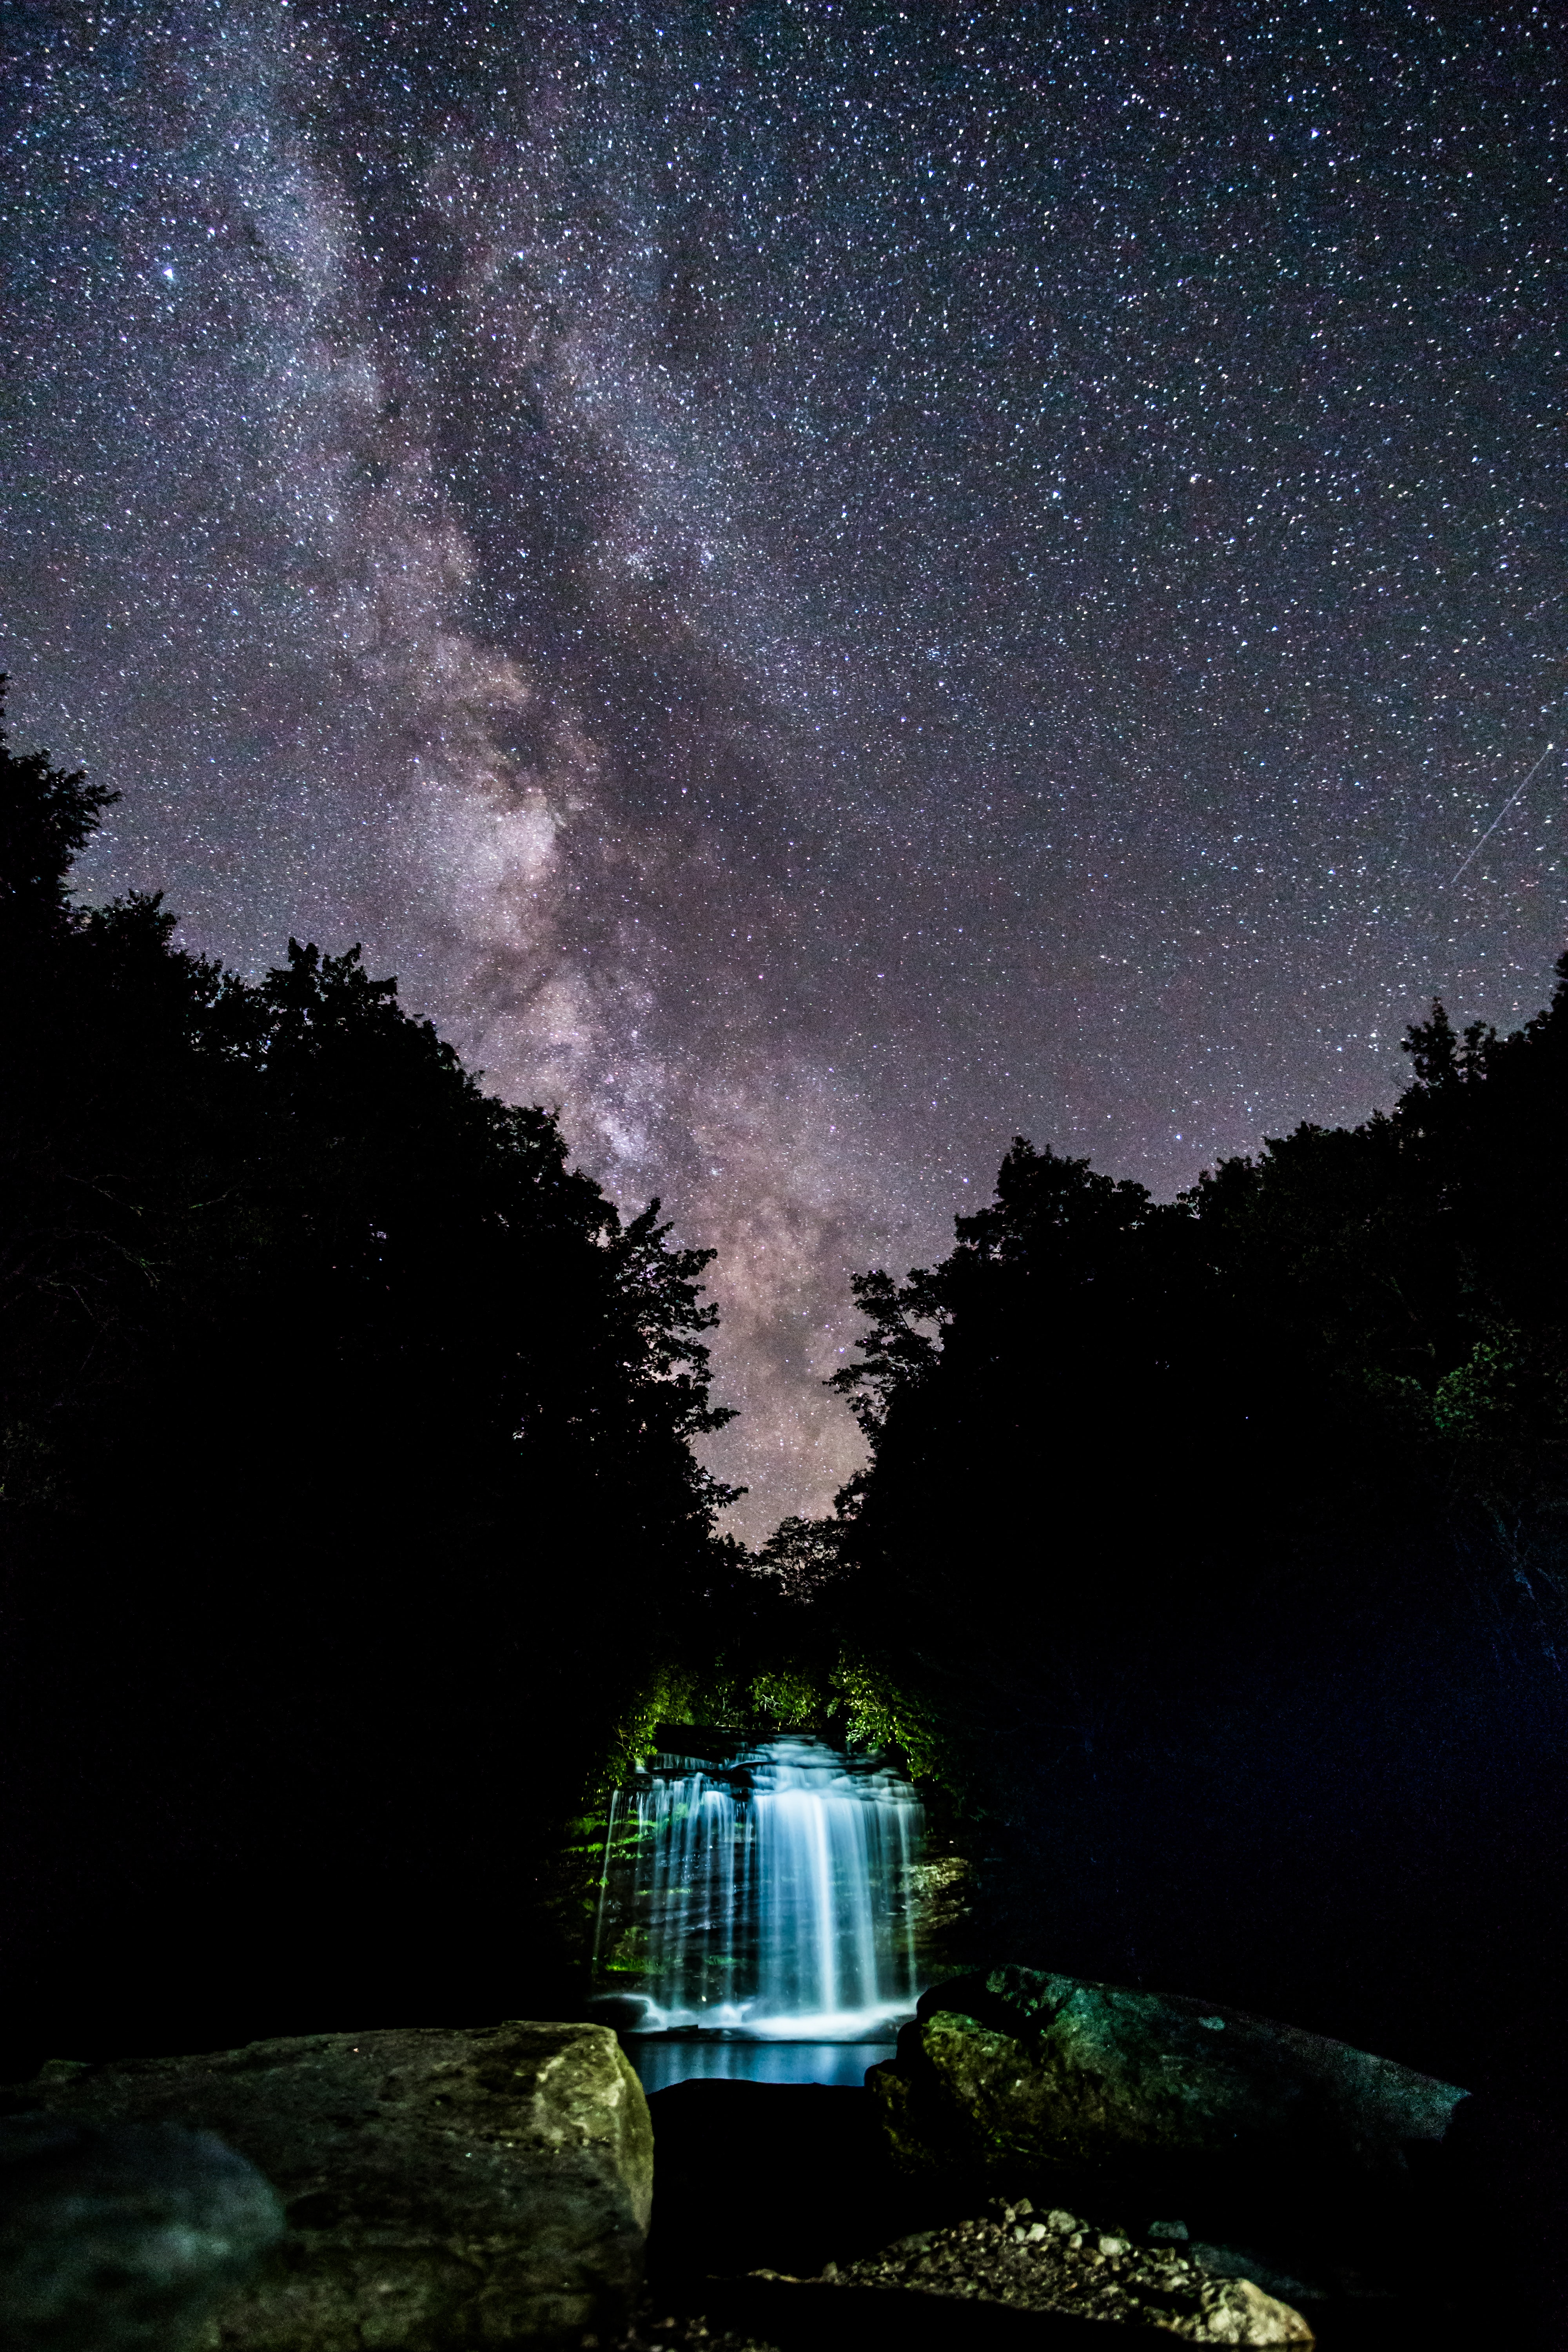 waterfalls under starry night